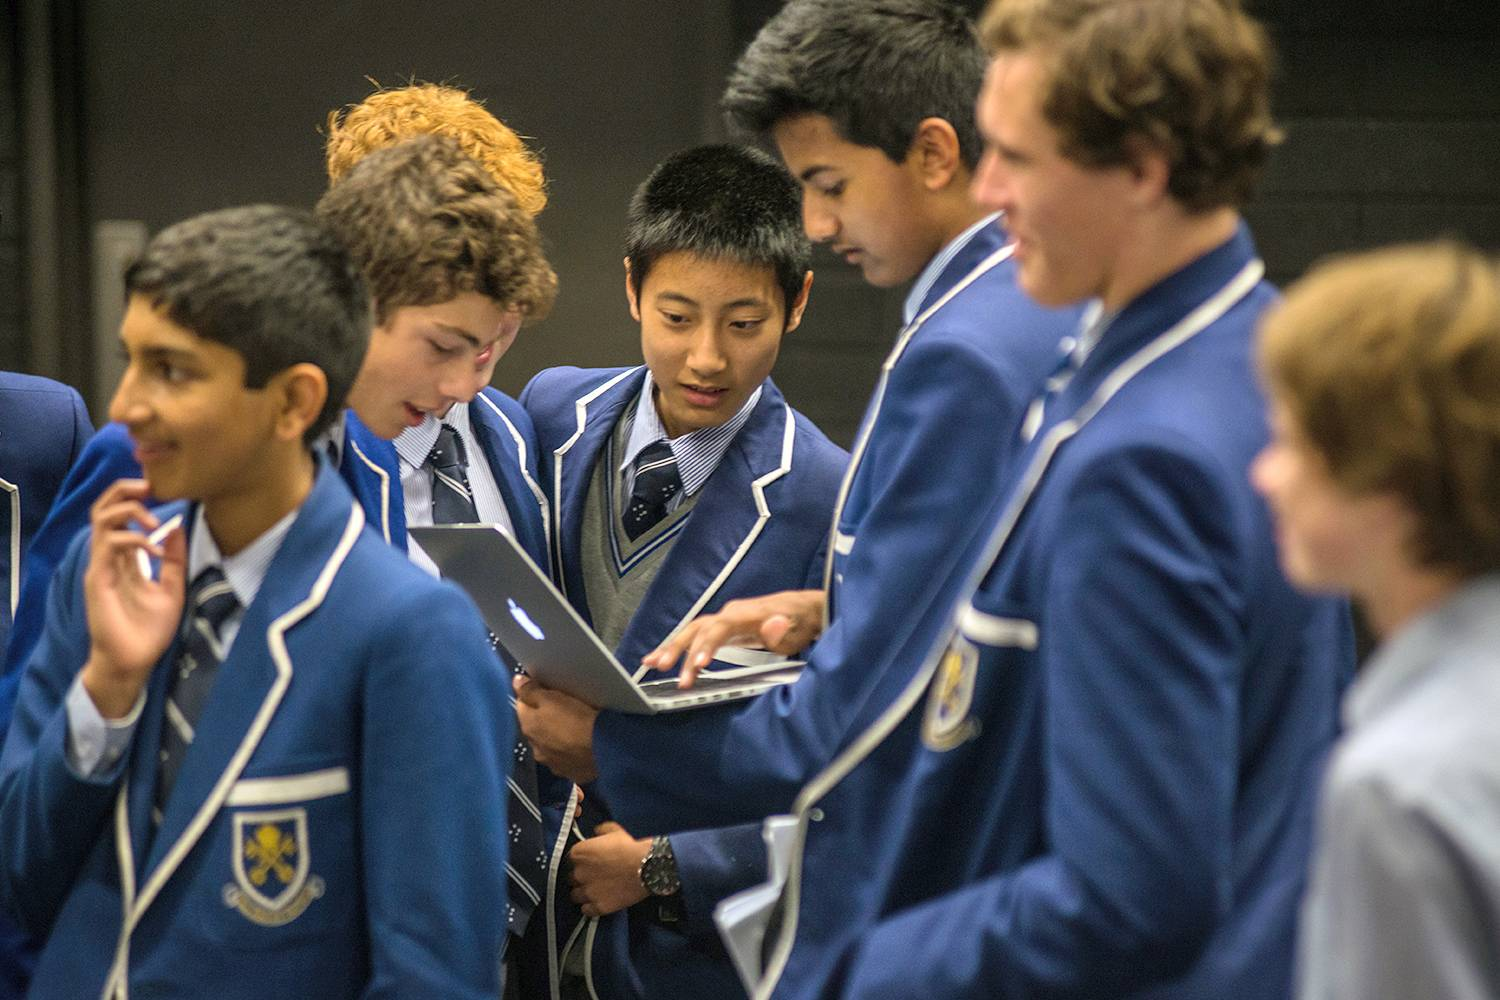 Where pedagogy meets technology at St Peter's College, Adelaide